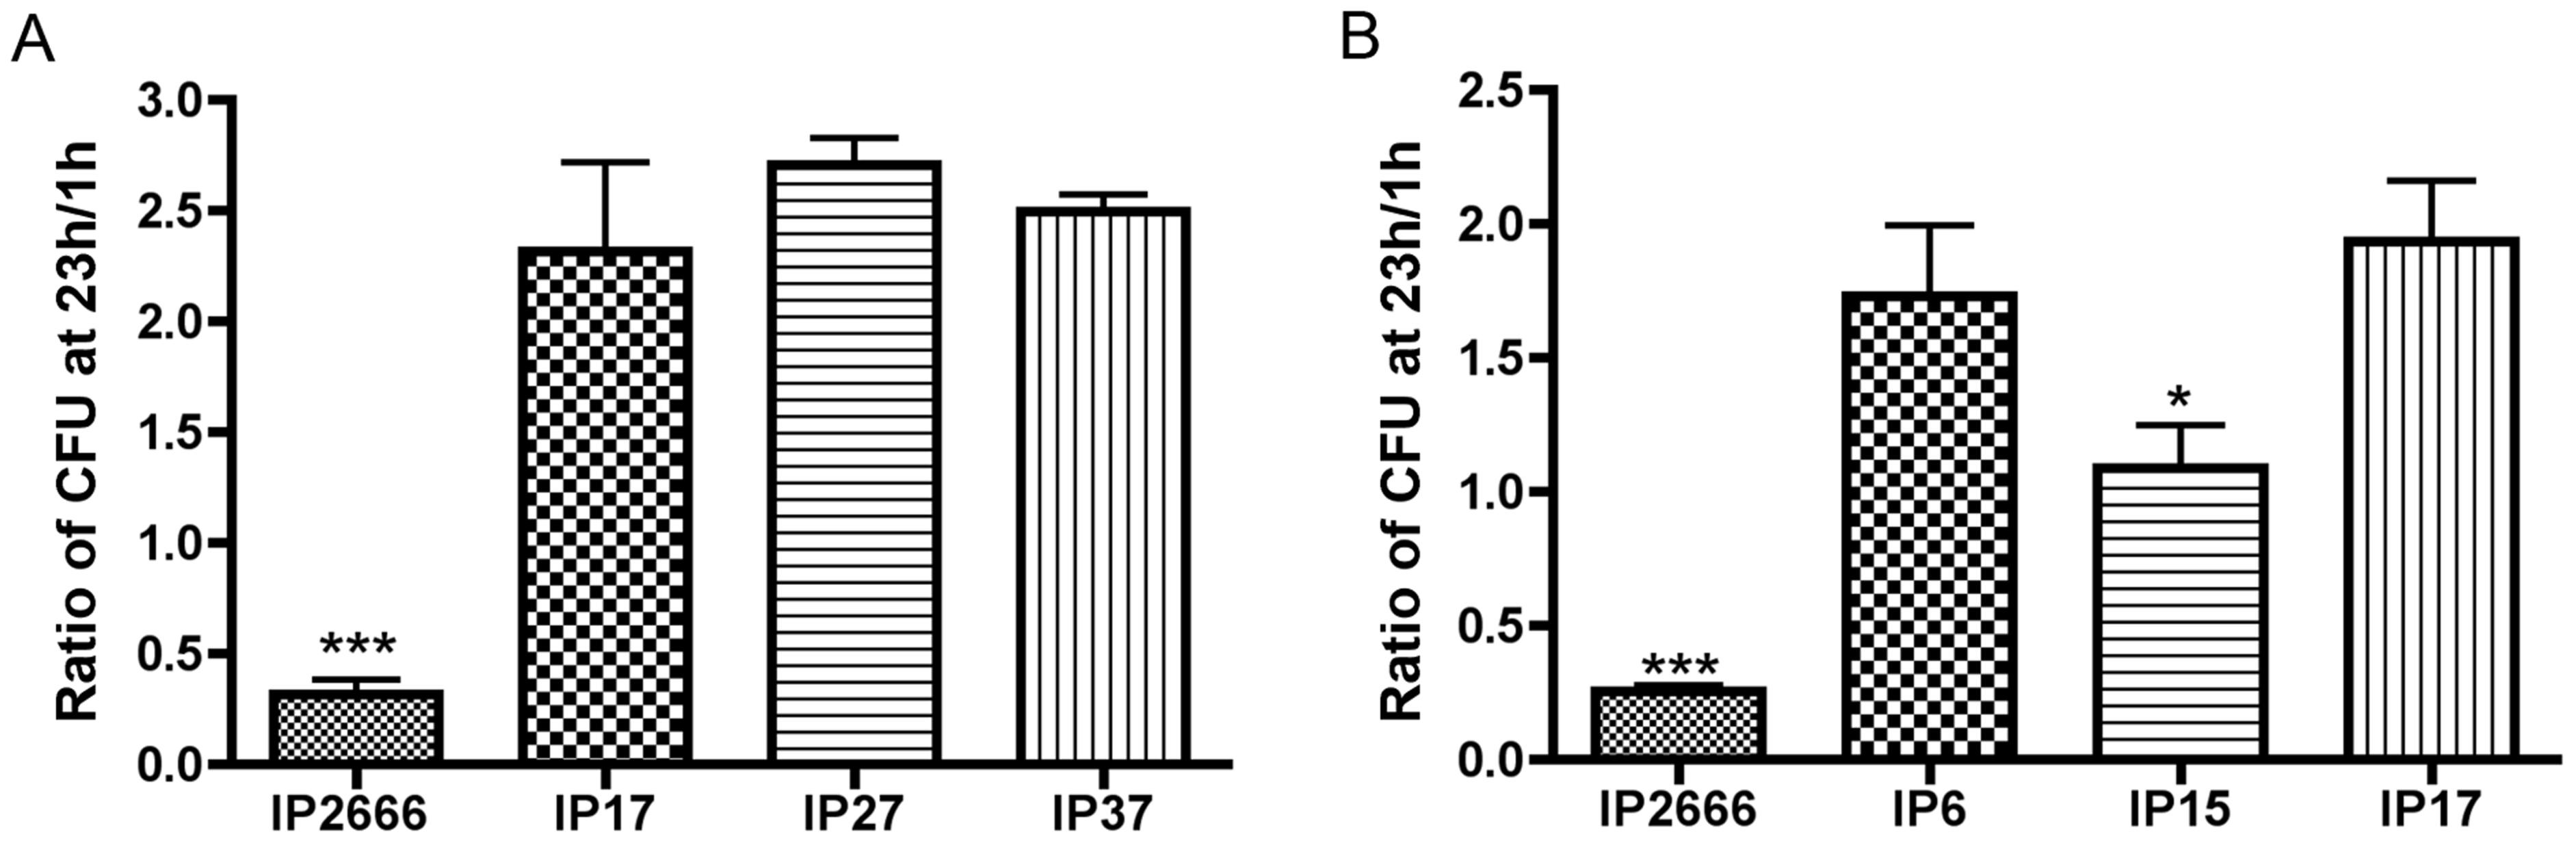 Comparison of different <i>Y. pseudotuberculosis</i> strains for survival inside macrophages as determined by CFU assay.